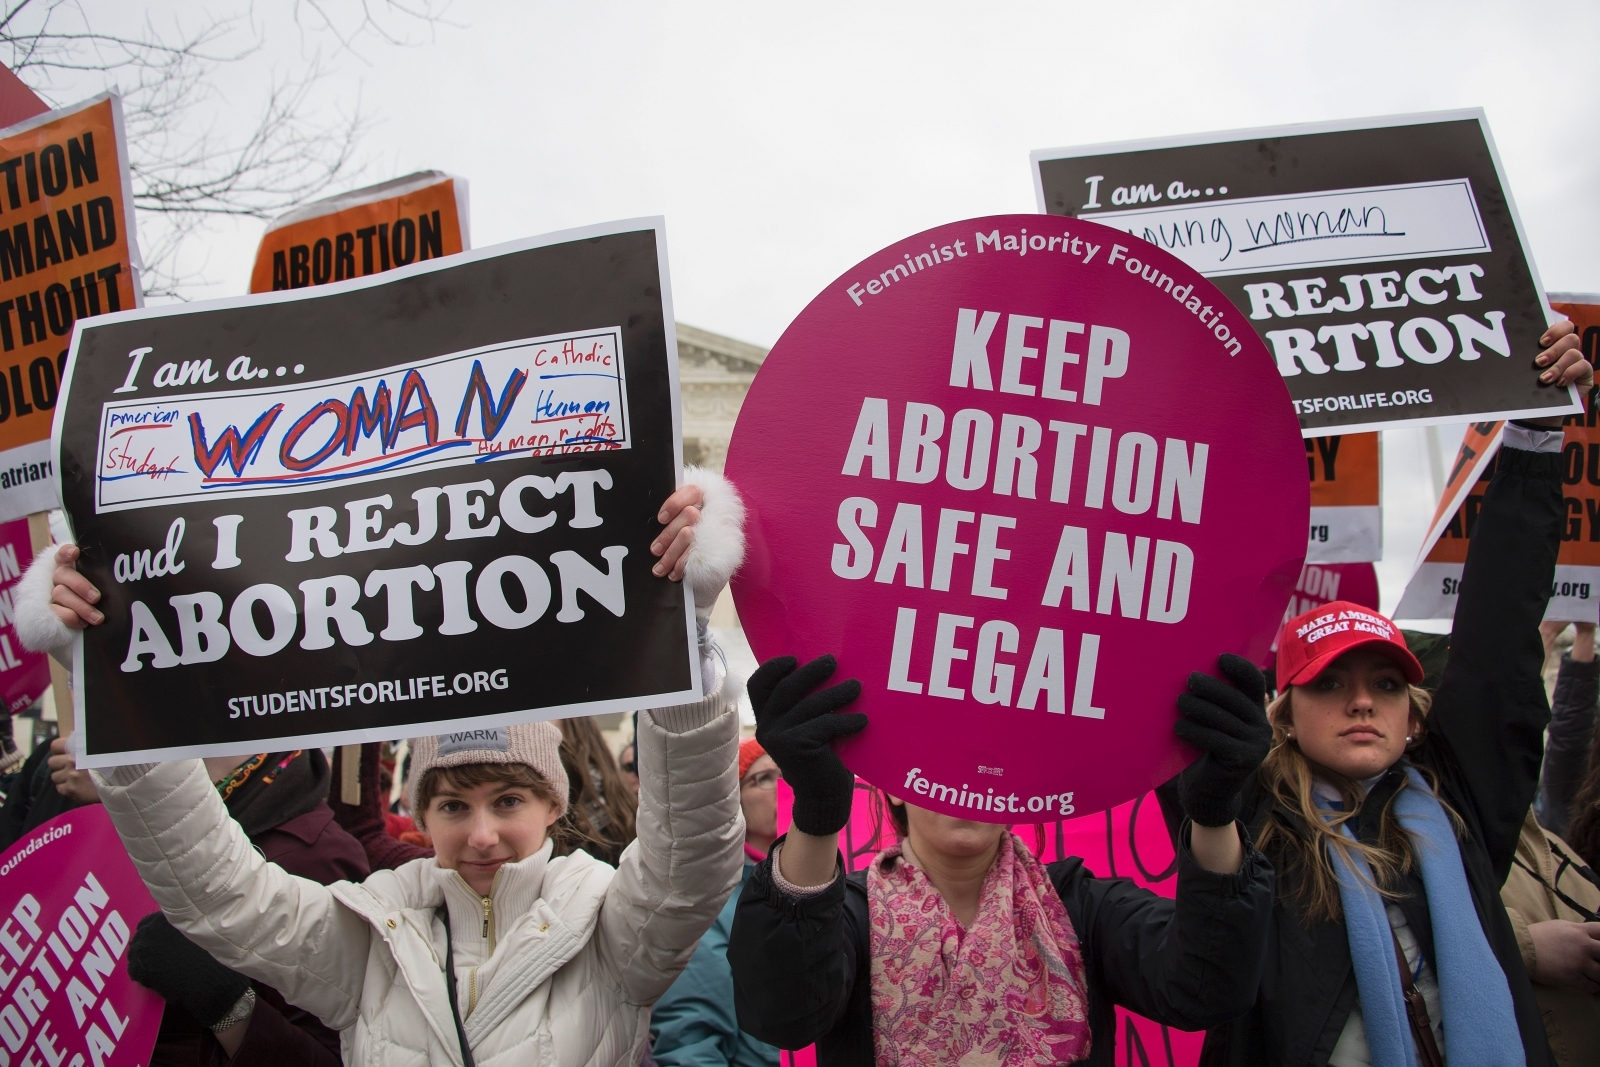 What's 'deplorable' is Democrats' recent vote on abortion bill